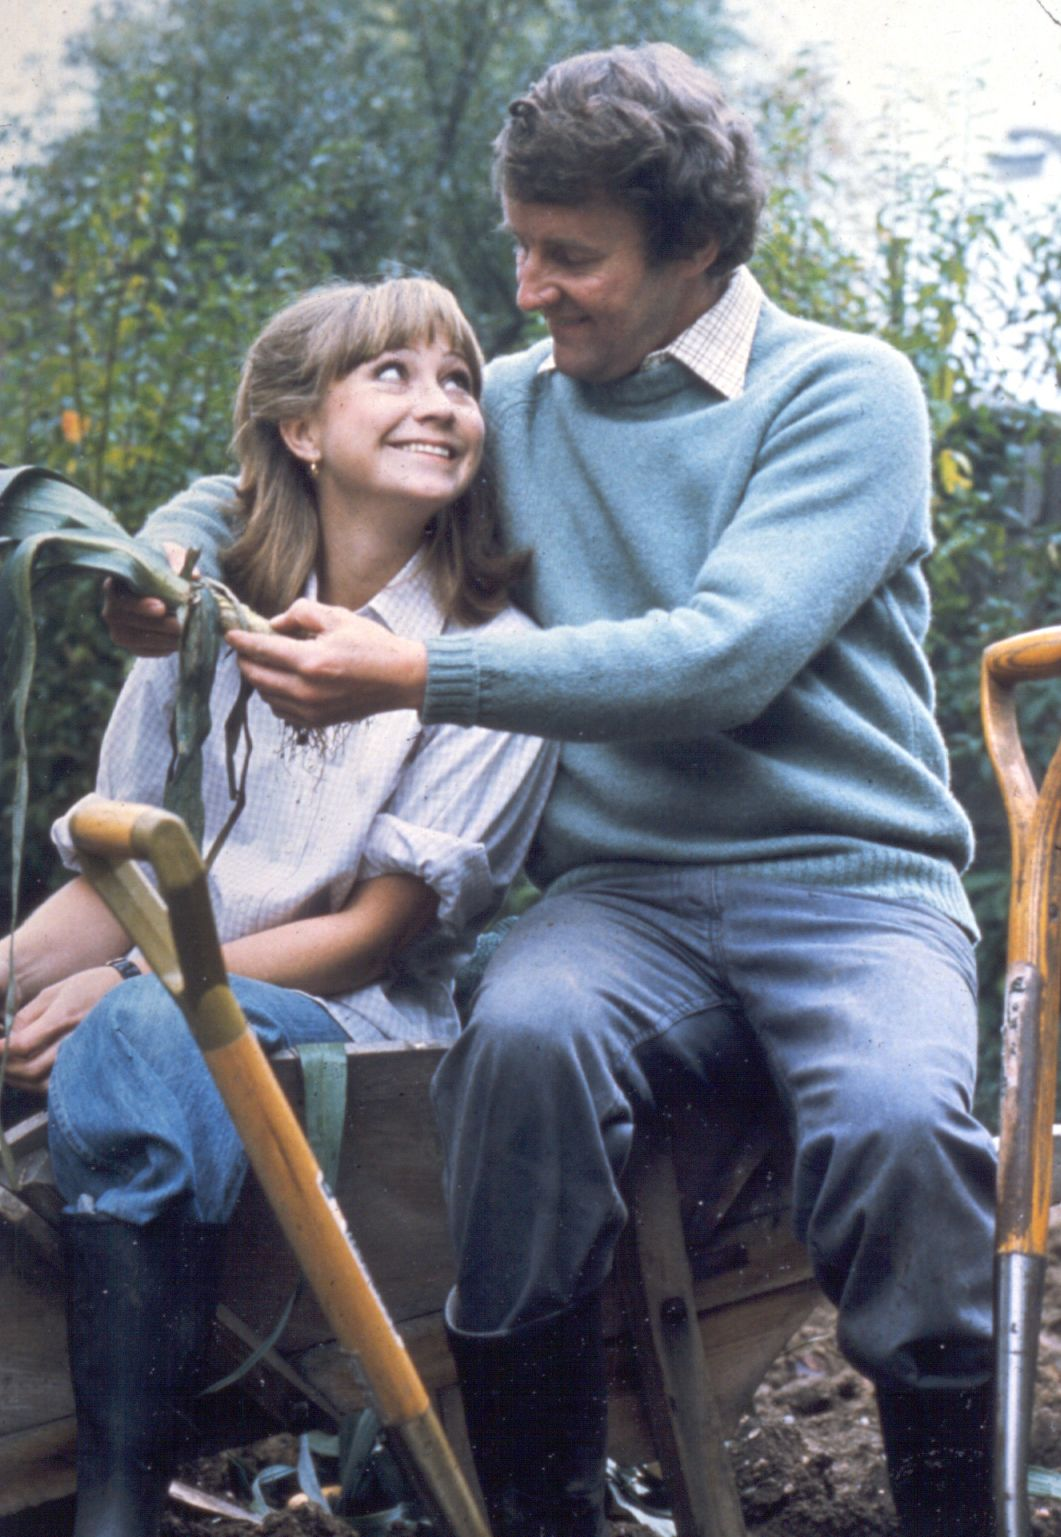 An image of the two main characters from The Good Life: Tom Good and Barbara Good